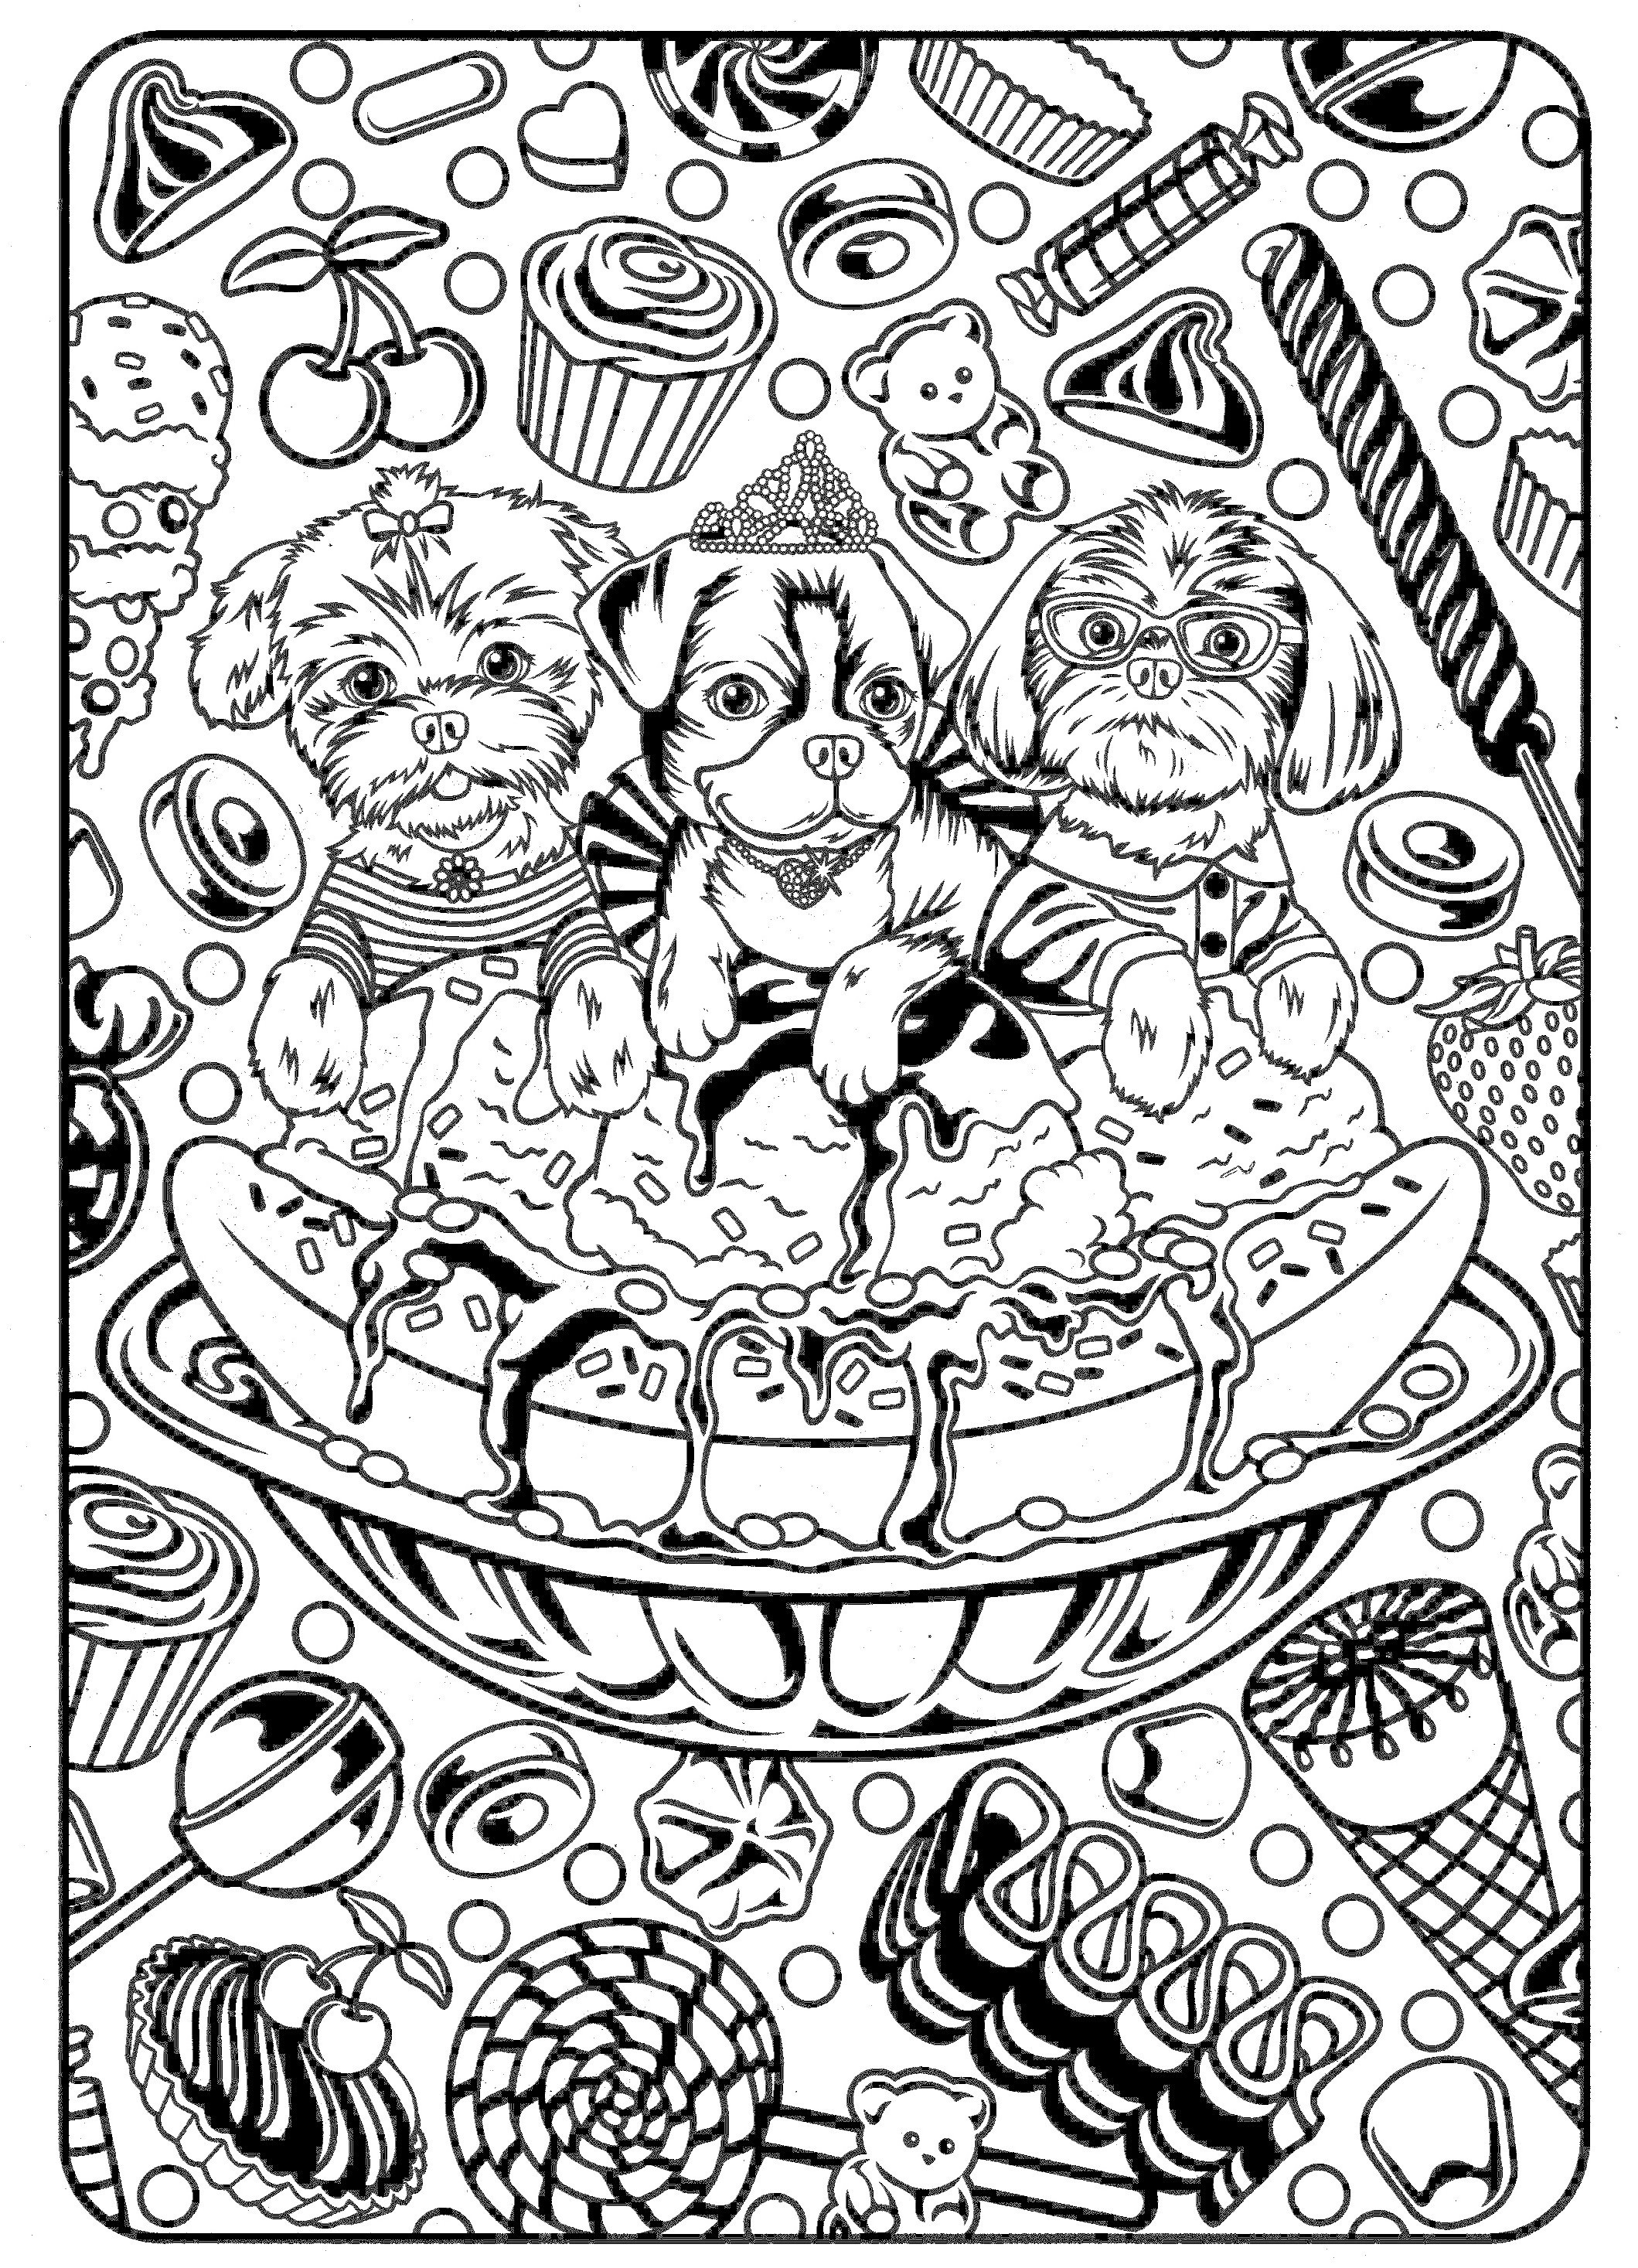 labor day coloring pages Collection-Veteran Coloring Pages Veterans Day Coloring Pages Brilliant Labor Day Coloring Pages Best 6-k